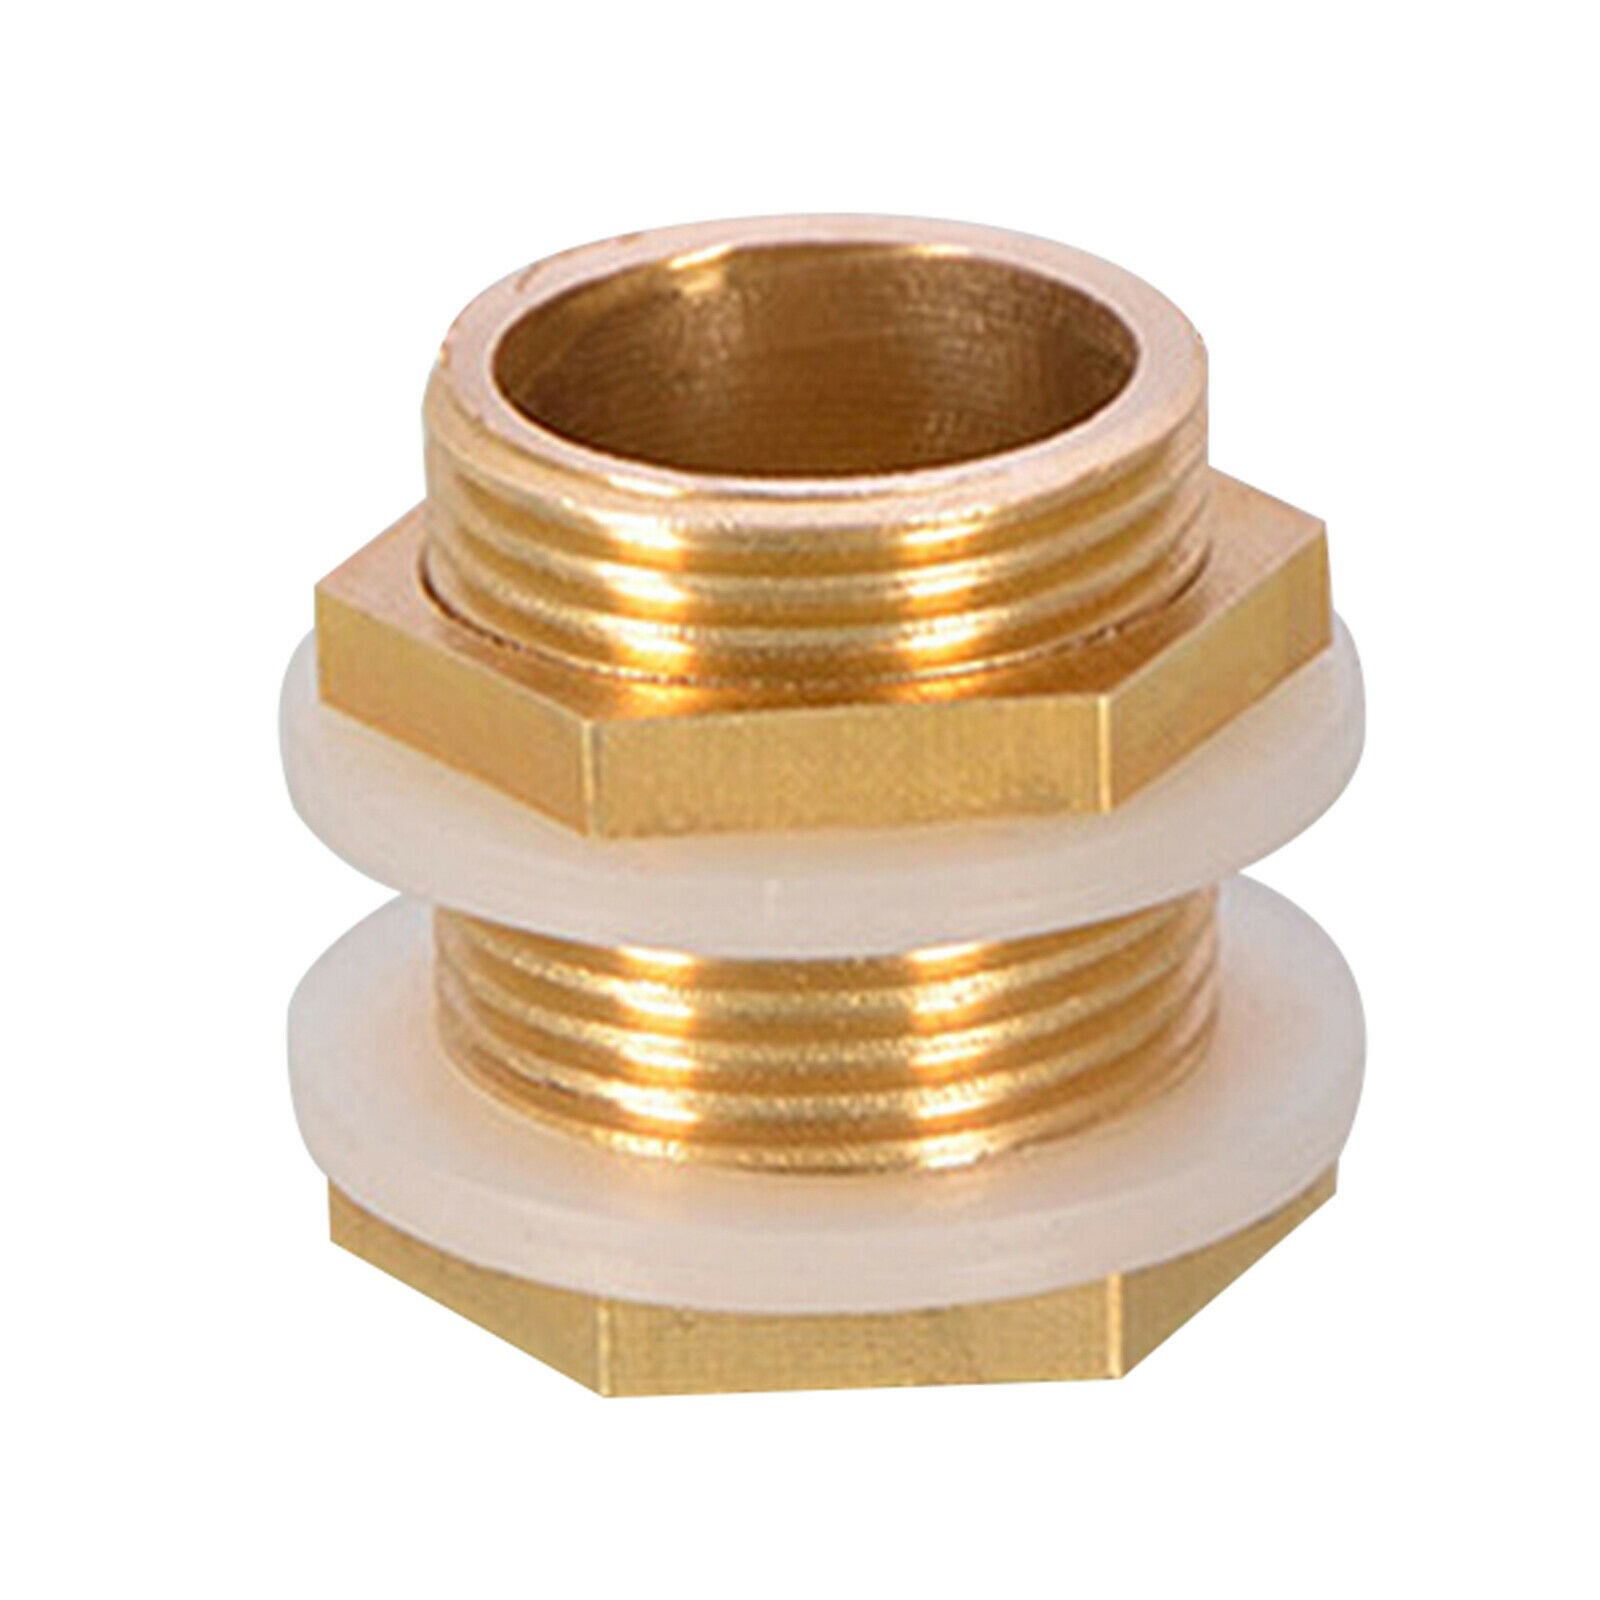 2 Pieces Brass Water Tank Connector With Plugs Durable Gasket For Rain Barrels